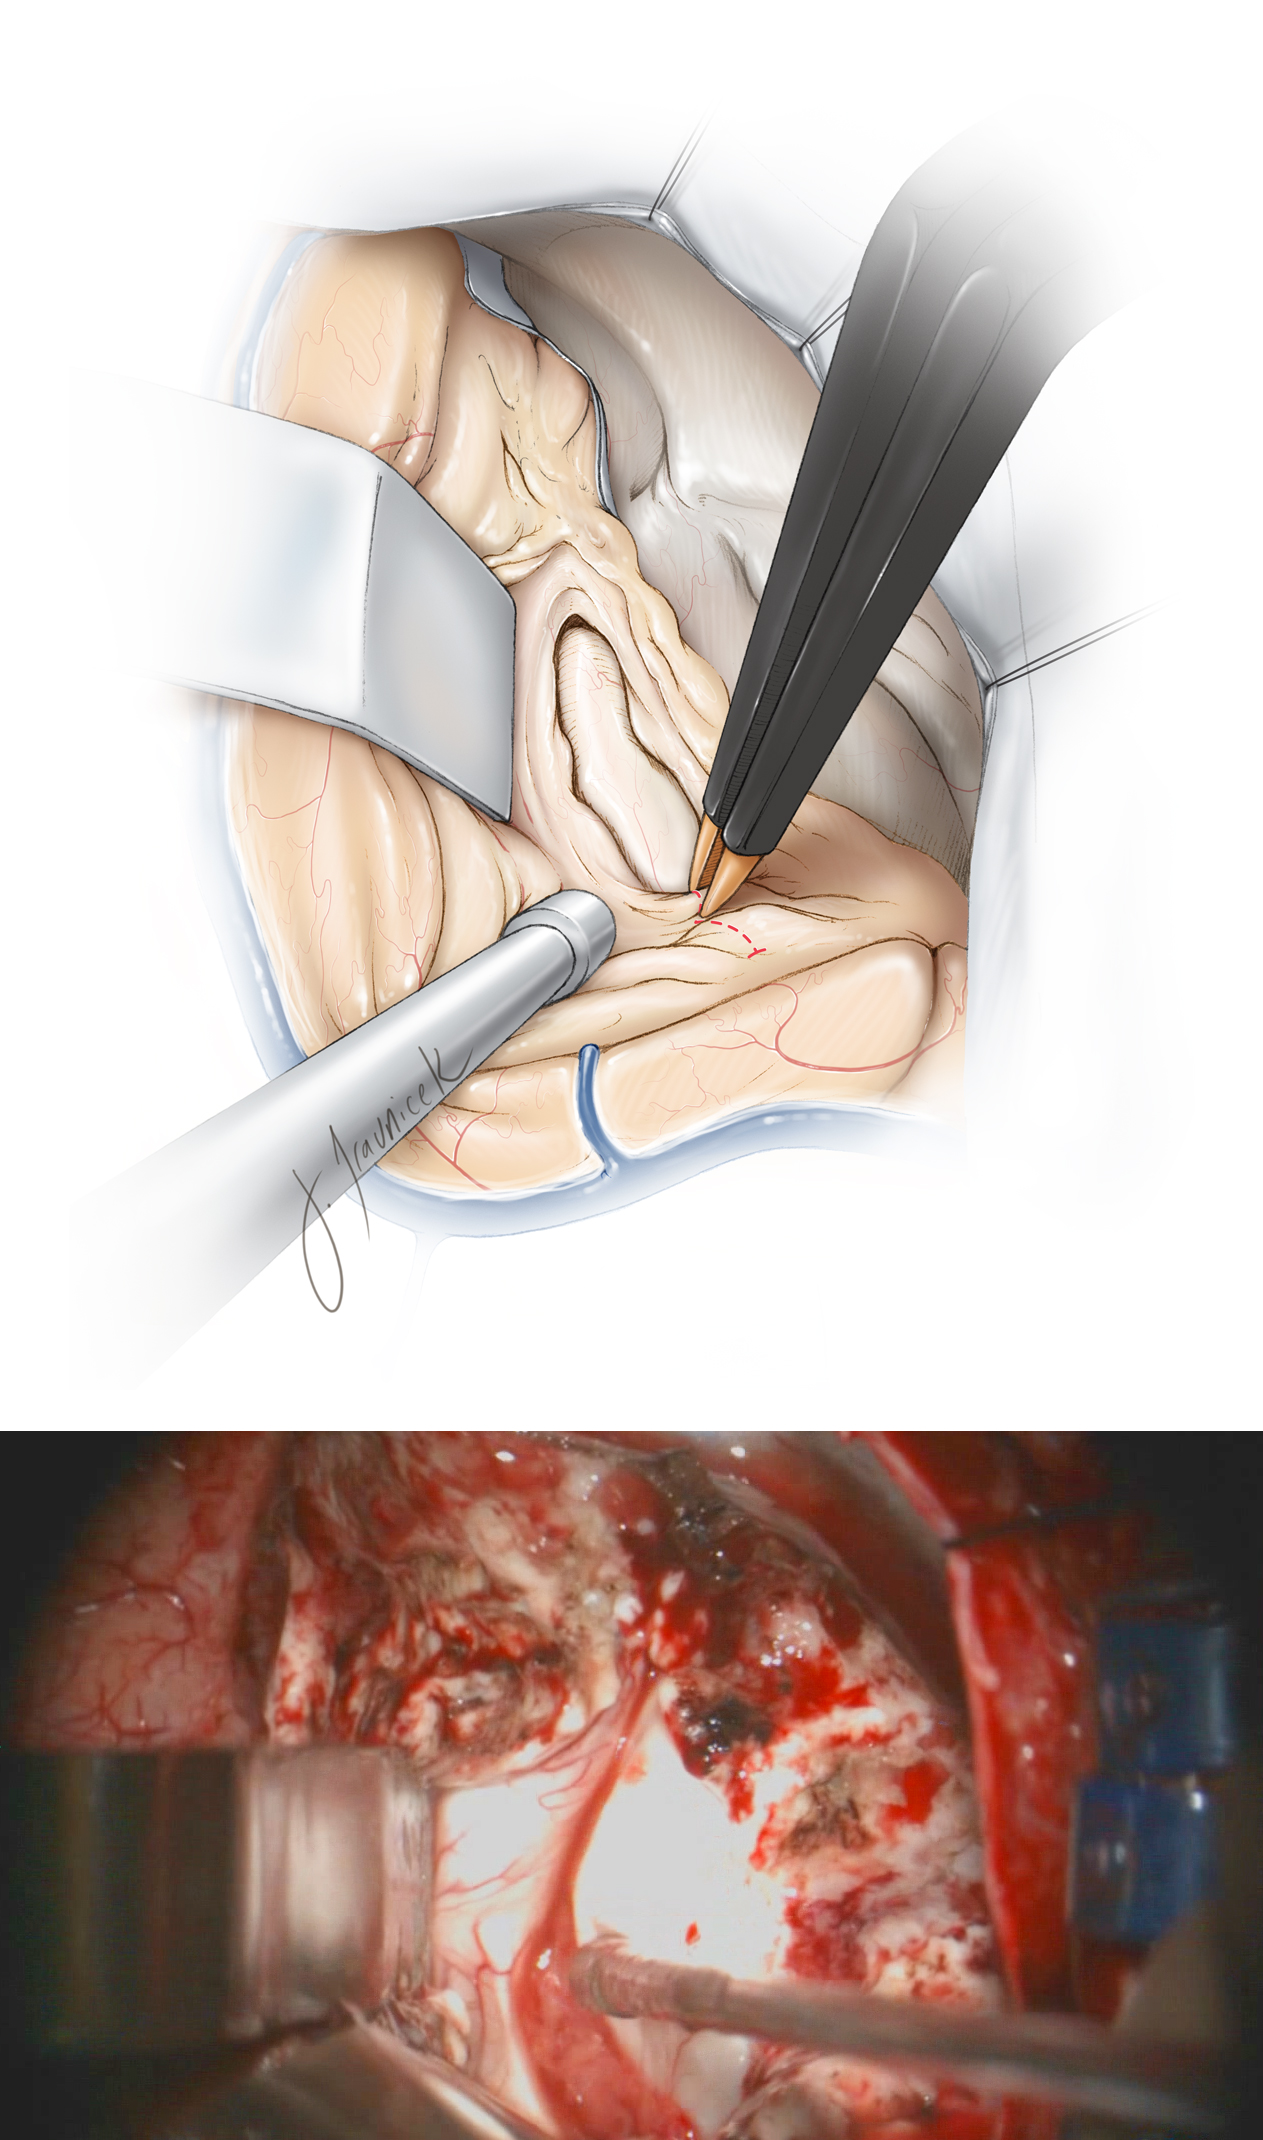 Figure 13: Exposure of the hippocampus is expanded by disconnection of the occipitotemporal fasciculus on the lateral wall of the ventricle. This dissection is parallel to the lateral edge of the hippocampus. Moreover, the fusiform gyrus is incised along the occipitotemporal fasciculus until the arachnoid of the mesial occipitotemporal gyrus is identified. The choroid plexus is apparent at the tip of the suction device (lower intraoperative photo).